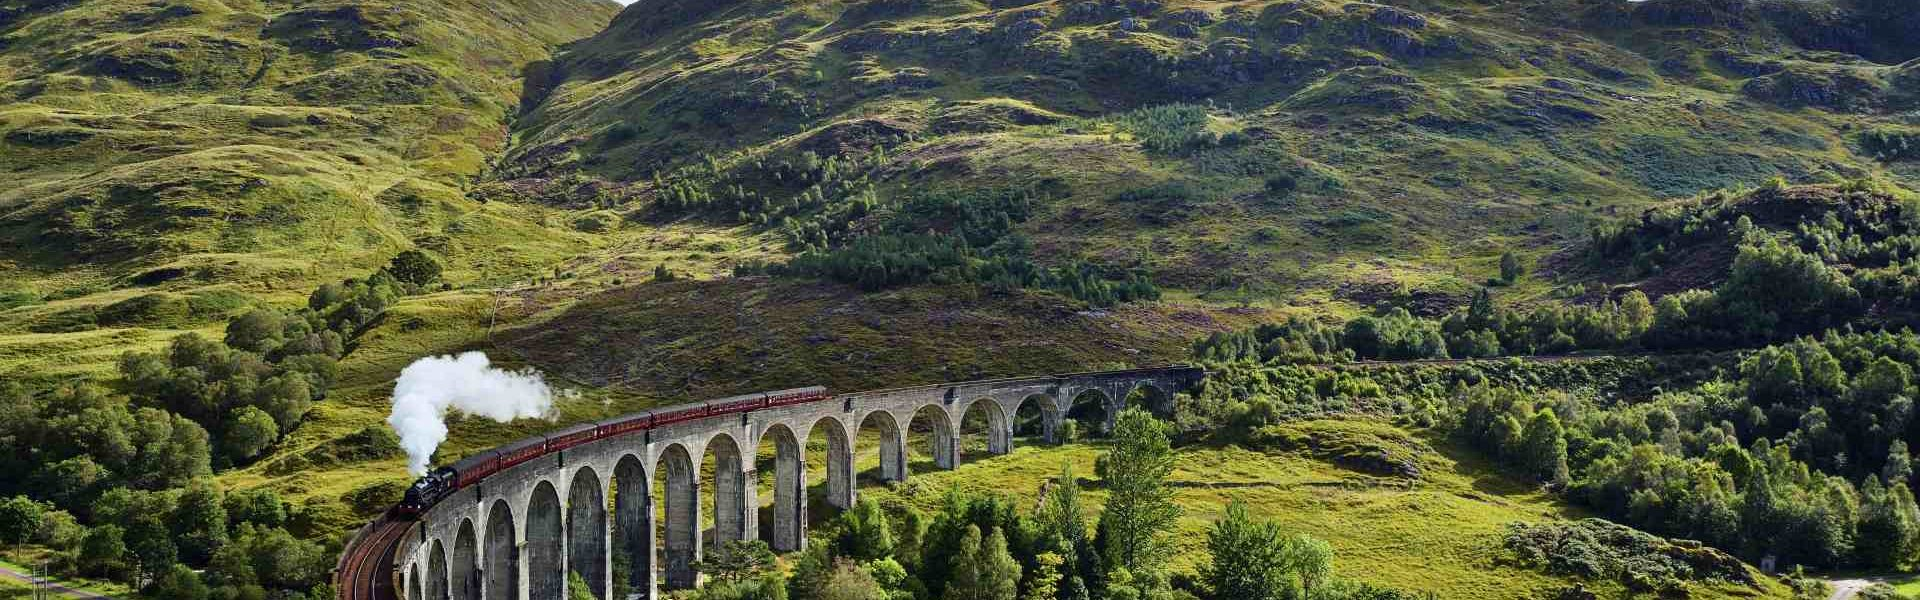 UK, Scotland, Highlands, Glenfinnan viaduct with a steam train passing over it